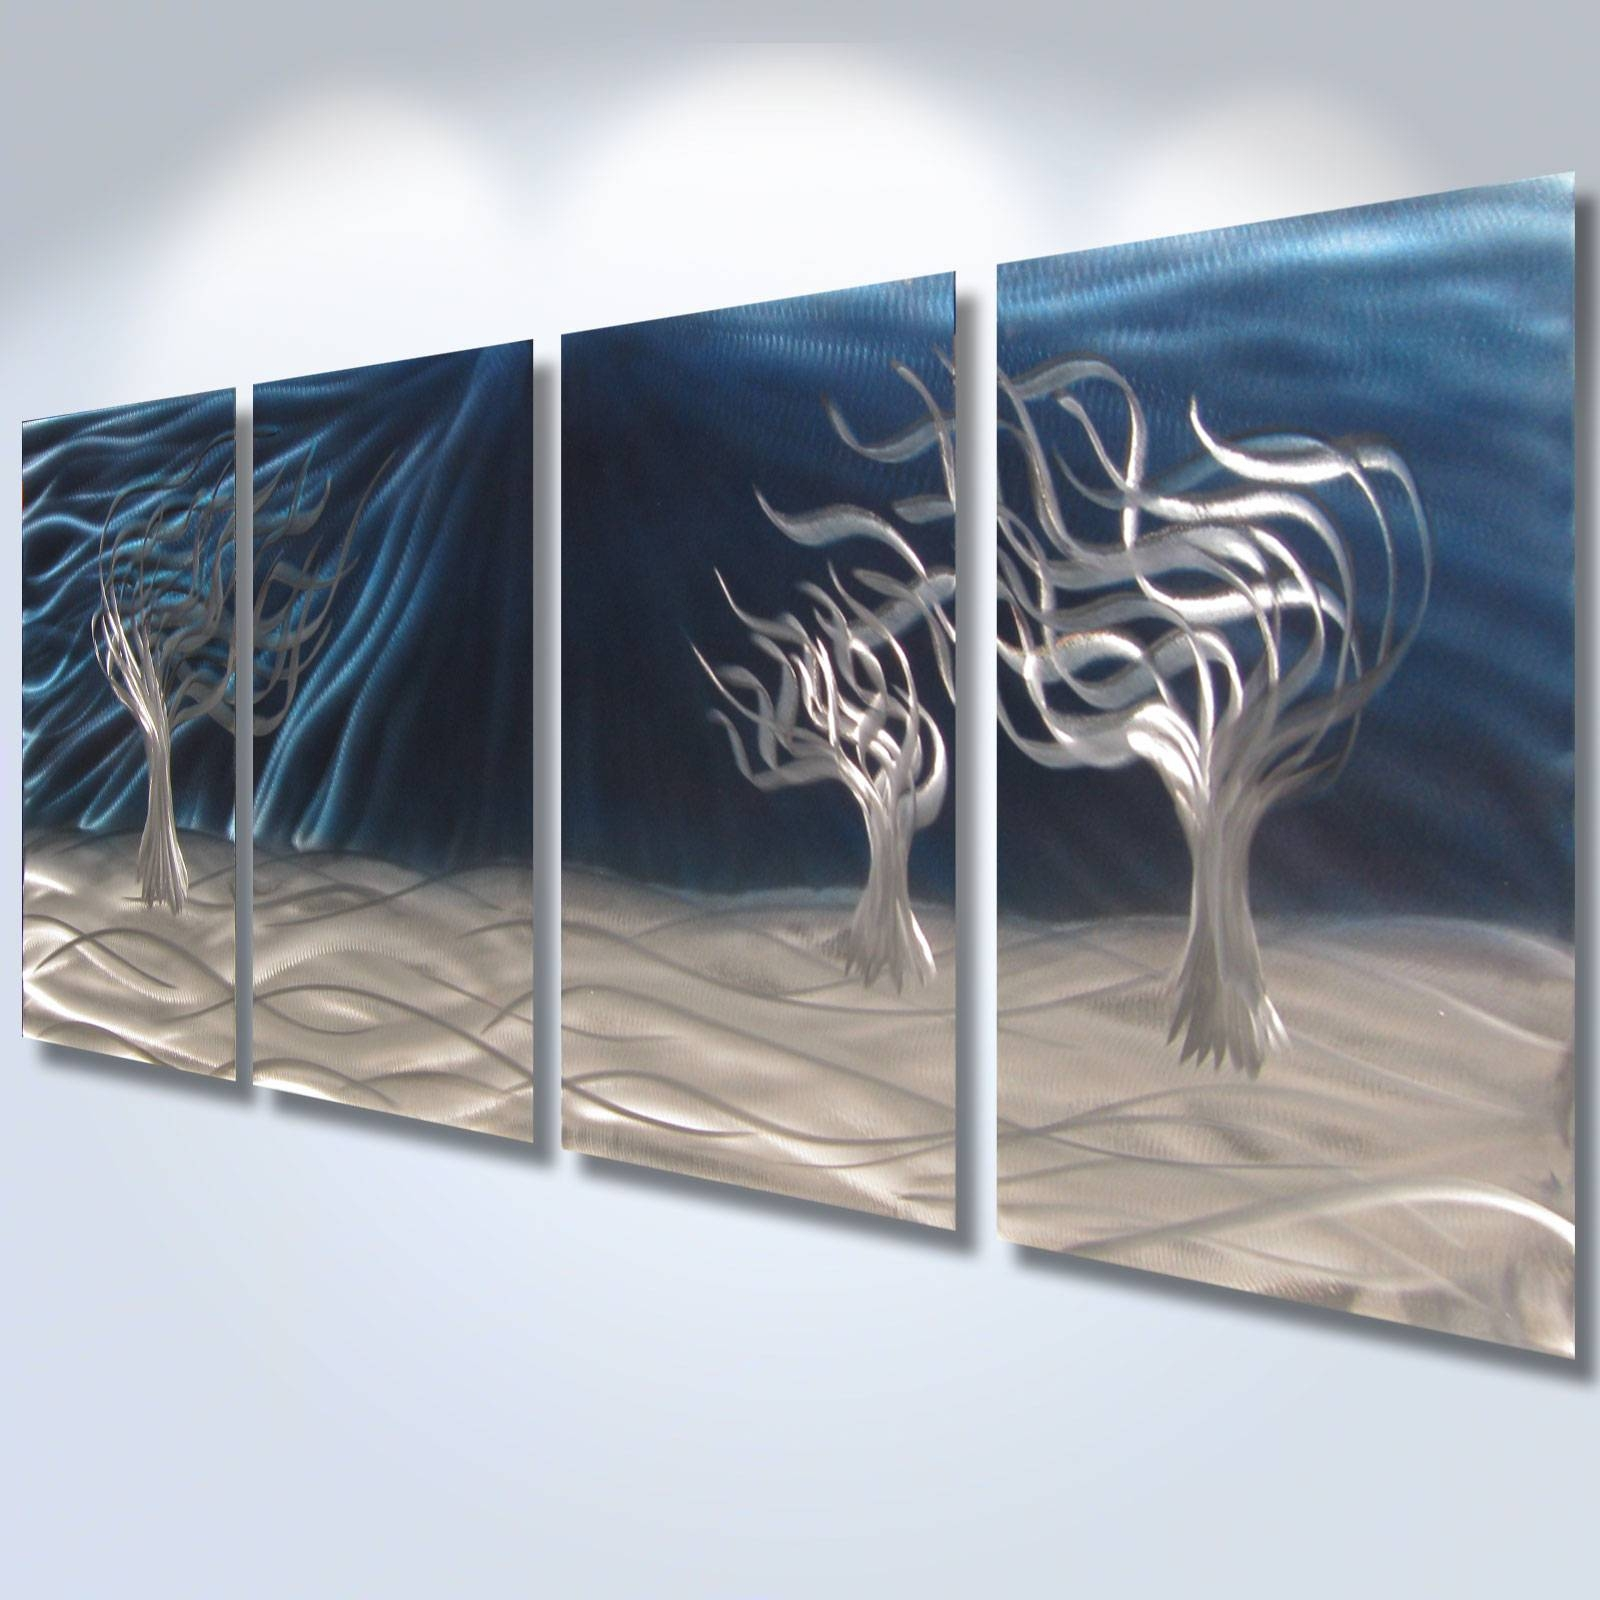 3 Trees Blue – Abstract Metal Wall Art Contemporary Modern Decor With Current Abstract Metal Wall Art (View 6 of 20)